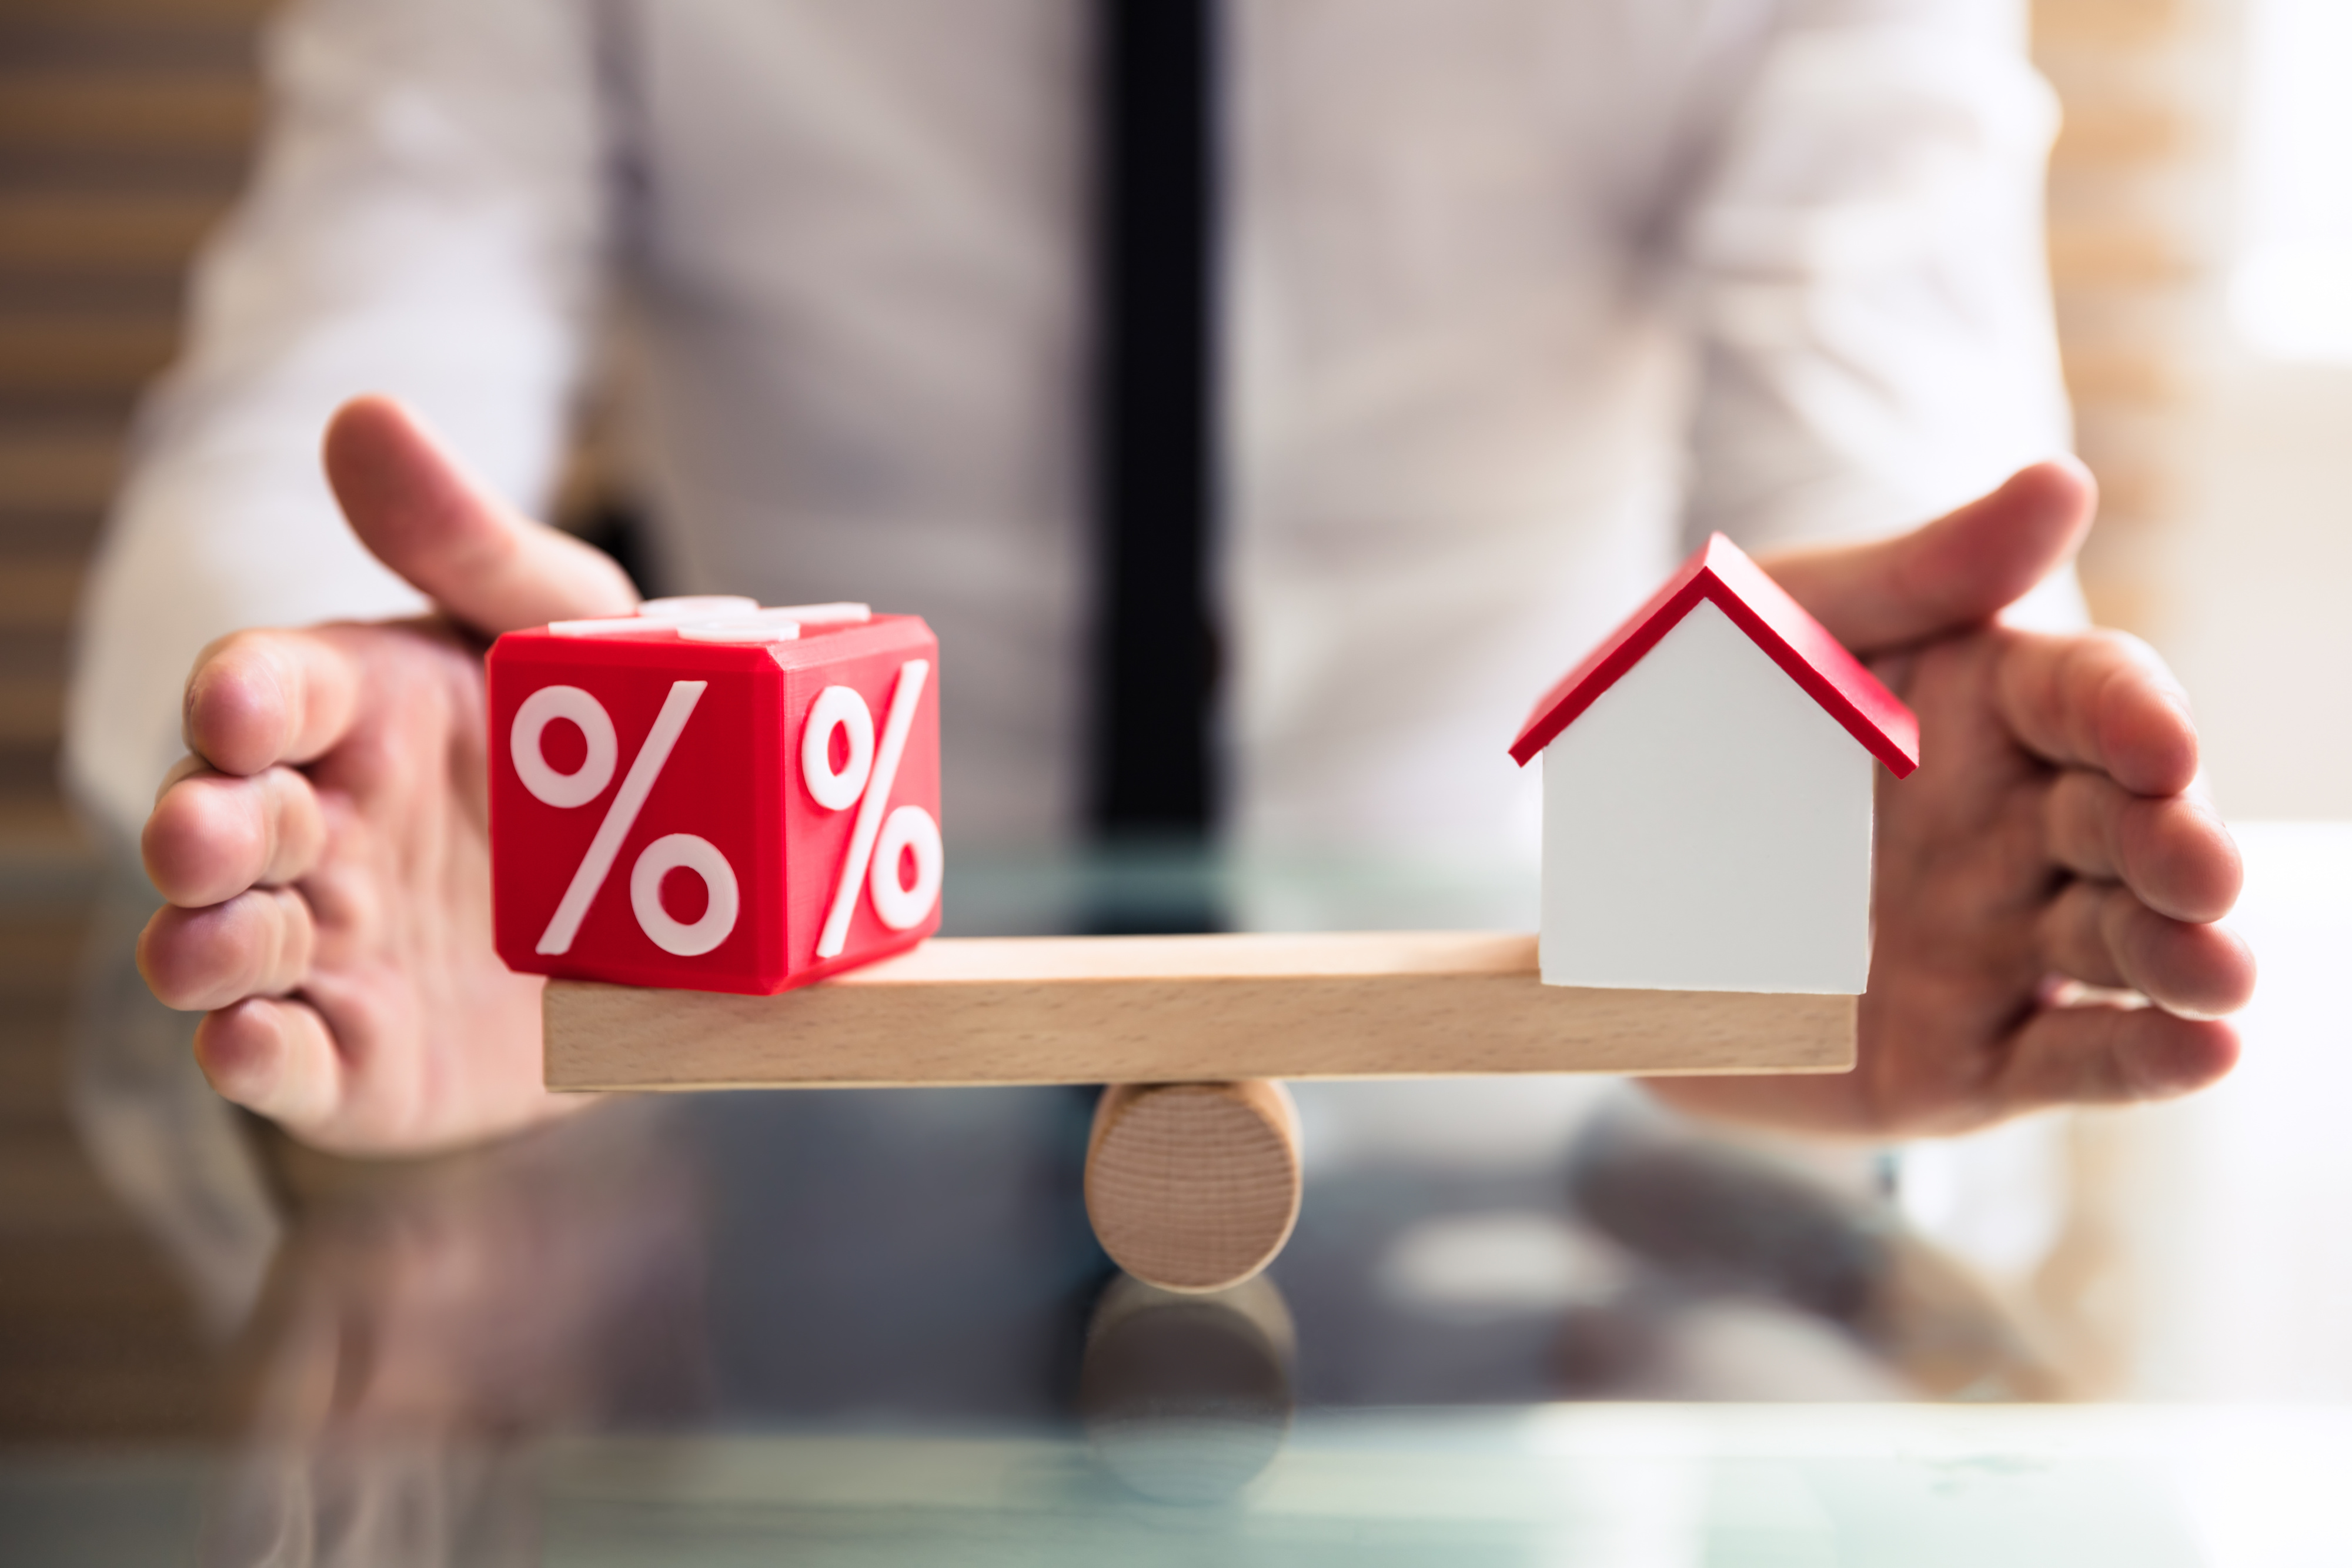 Fixed Mortgage Rates Are Low: Is It Really Time to Buy That Dream House?